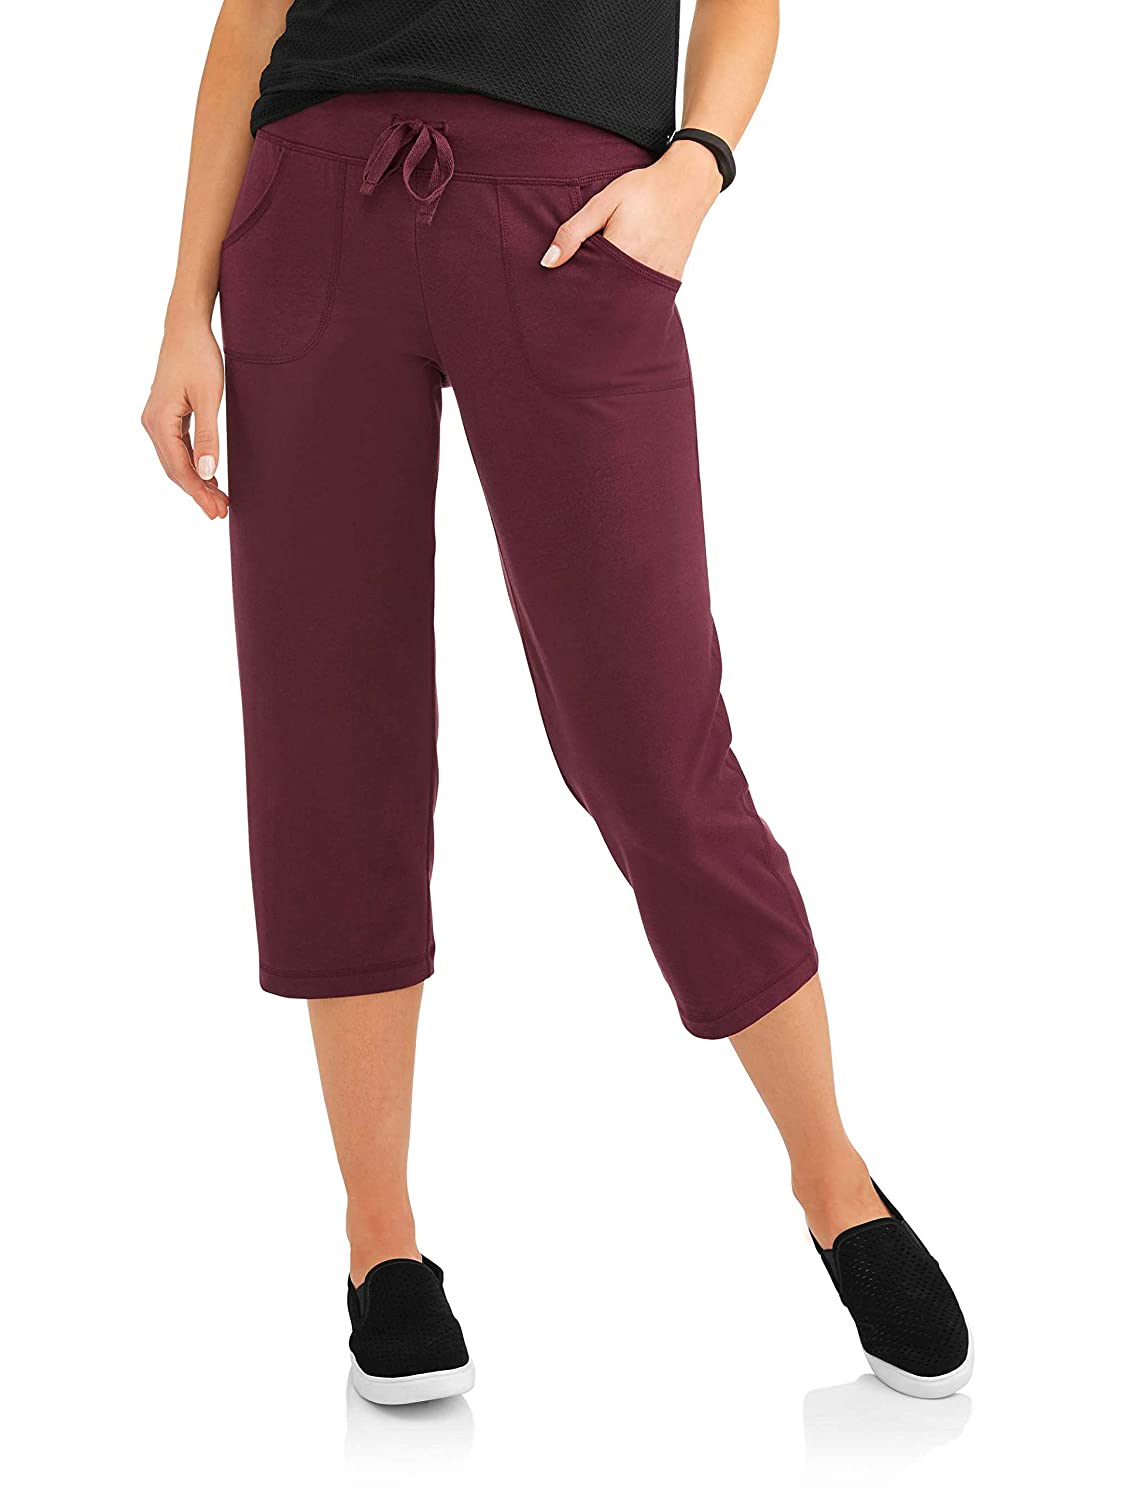 Athletic Works Women's Active Knit Capri